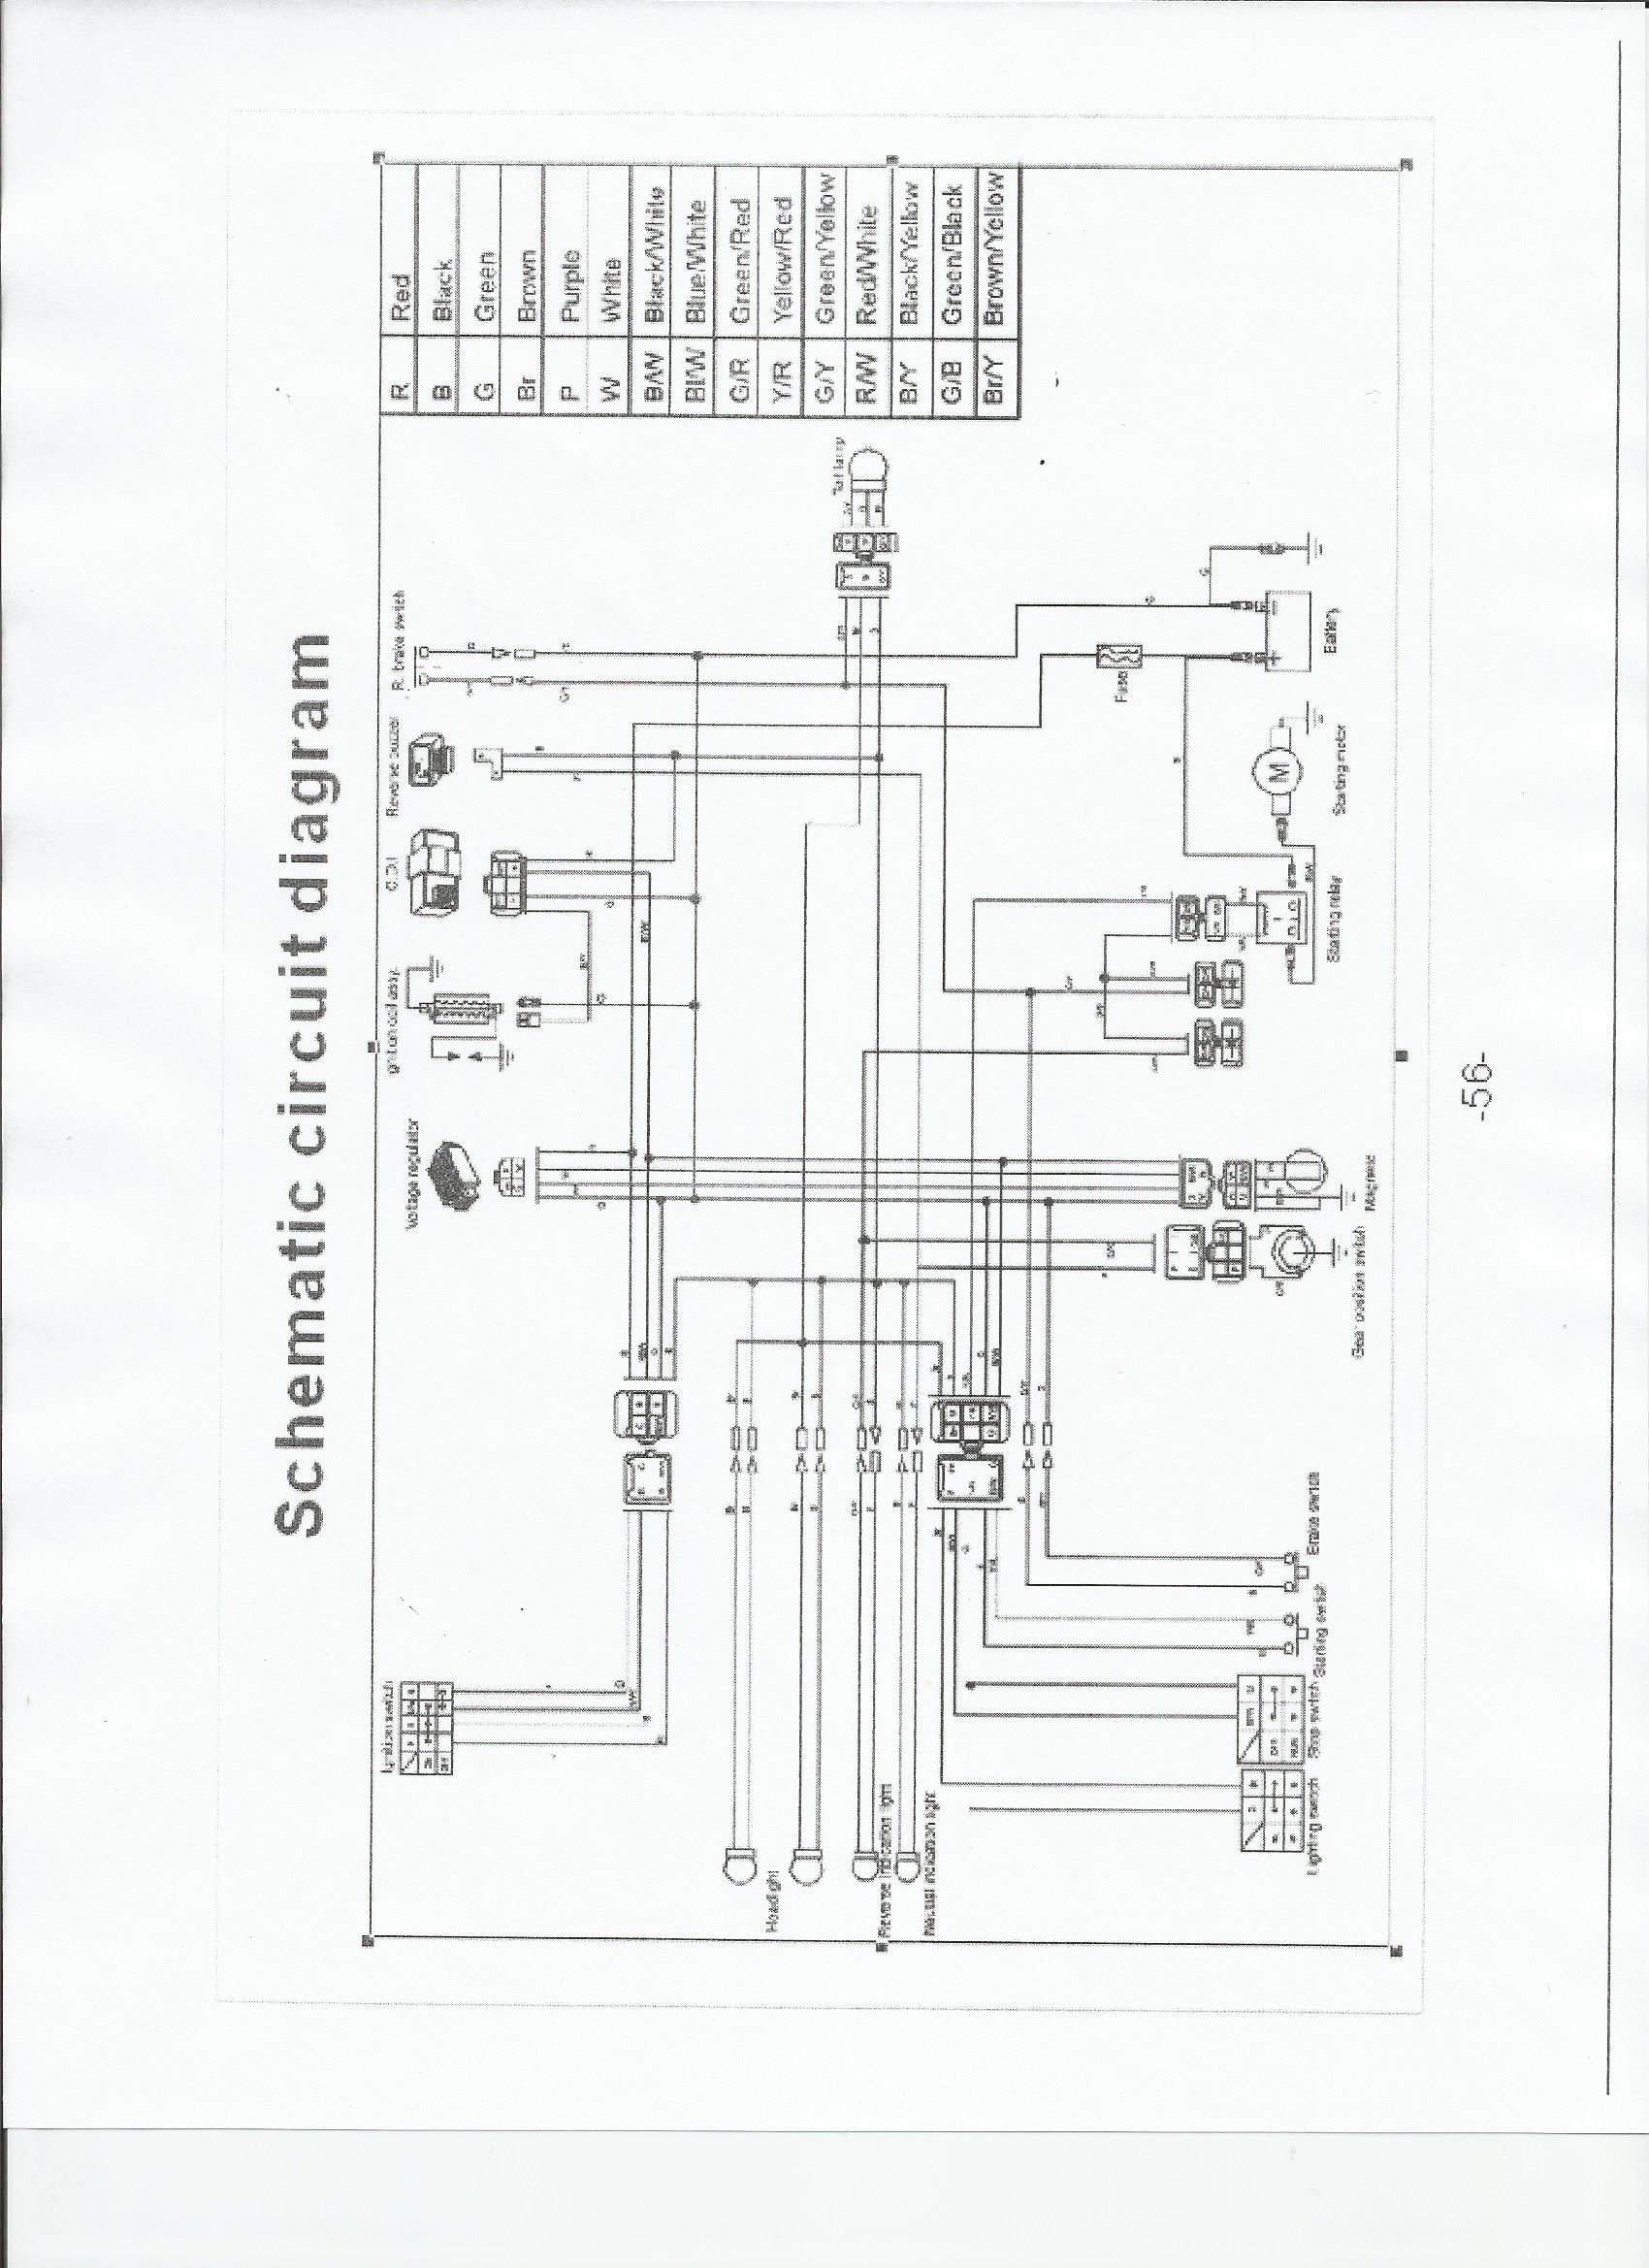 taotao atv 125 f wiring diagram wiring diagram u2022 rh msblog co 2012 taotao 50cc scooter wiring diagram 2012 taotao 50cc scooter wiring diagram